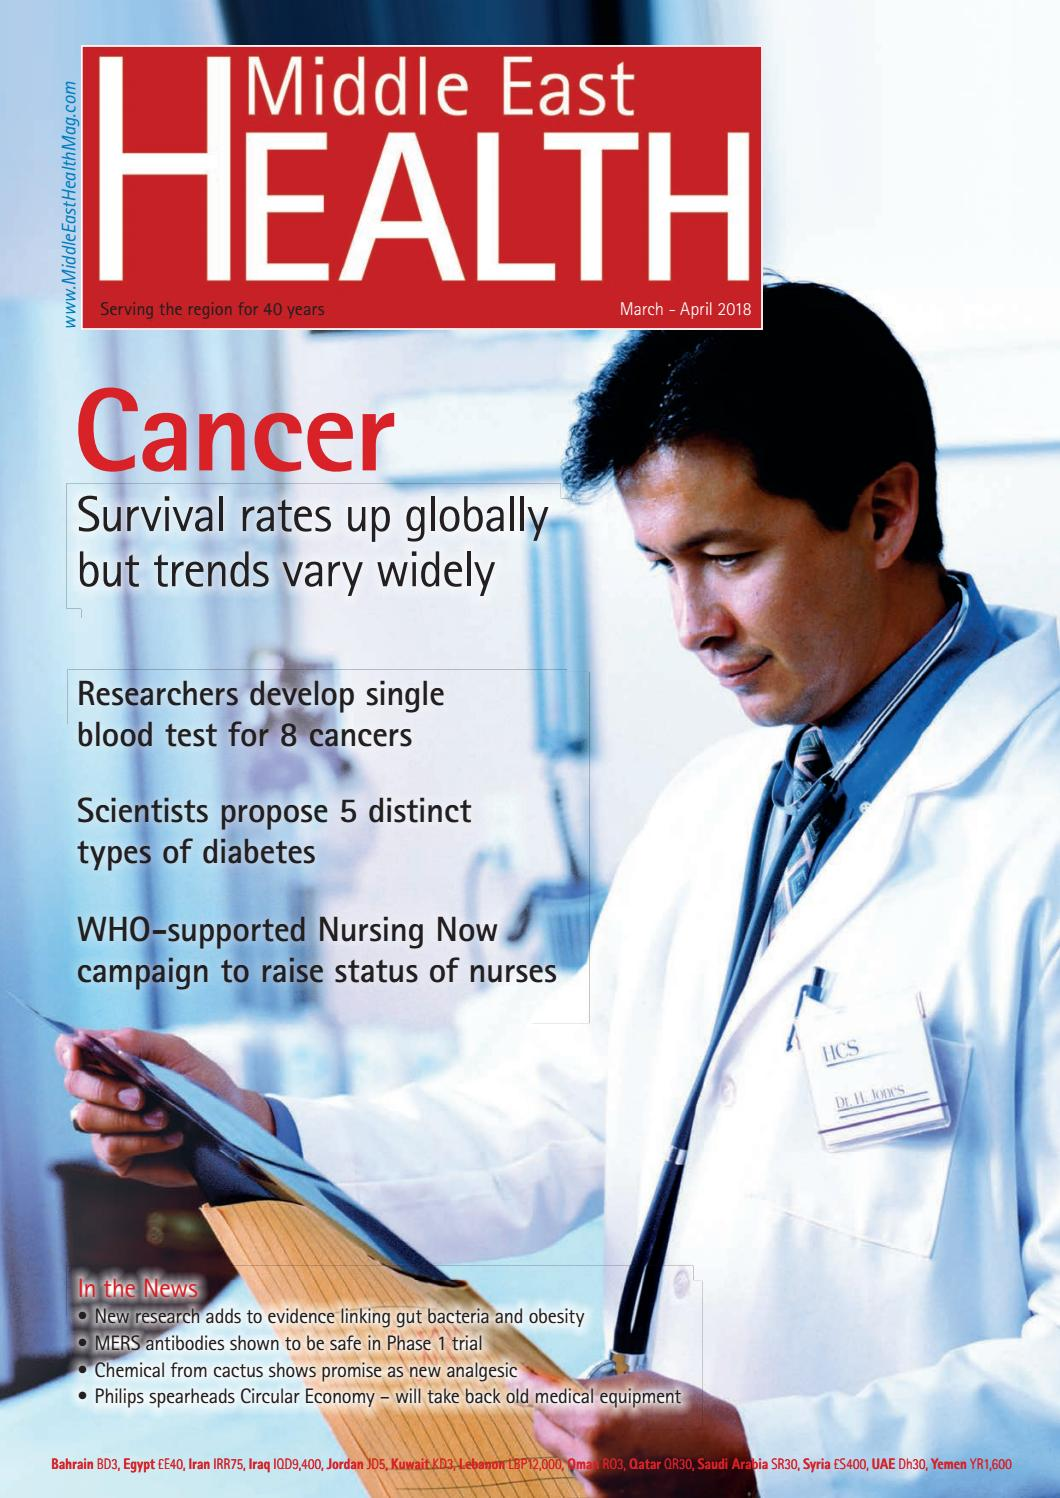 Middle East Health March/April 2018 by Middle East Health